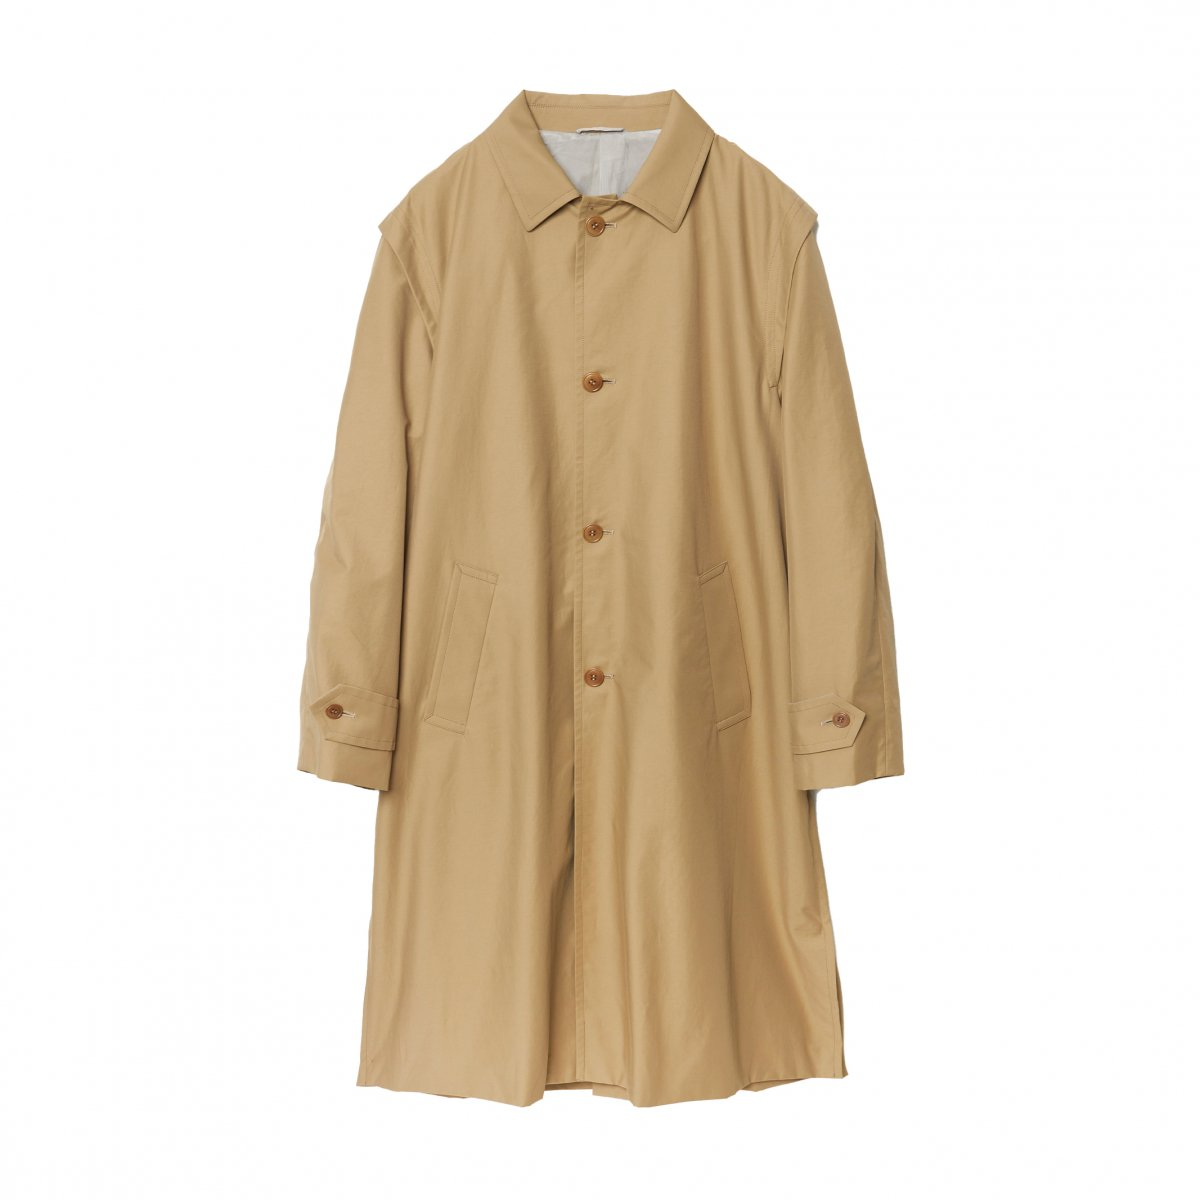 <img class='new_mark_img1' src='https://img.shop-pro.jp/img/new/icons5.gif' style='border:none;display:inline;margin:0px;padding:0px;width:auto;' />OLMETEX COTTON NYLON LOWDEN COAT / BEIGE